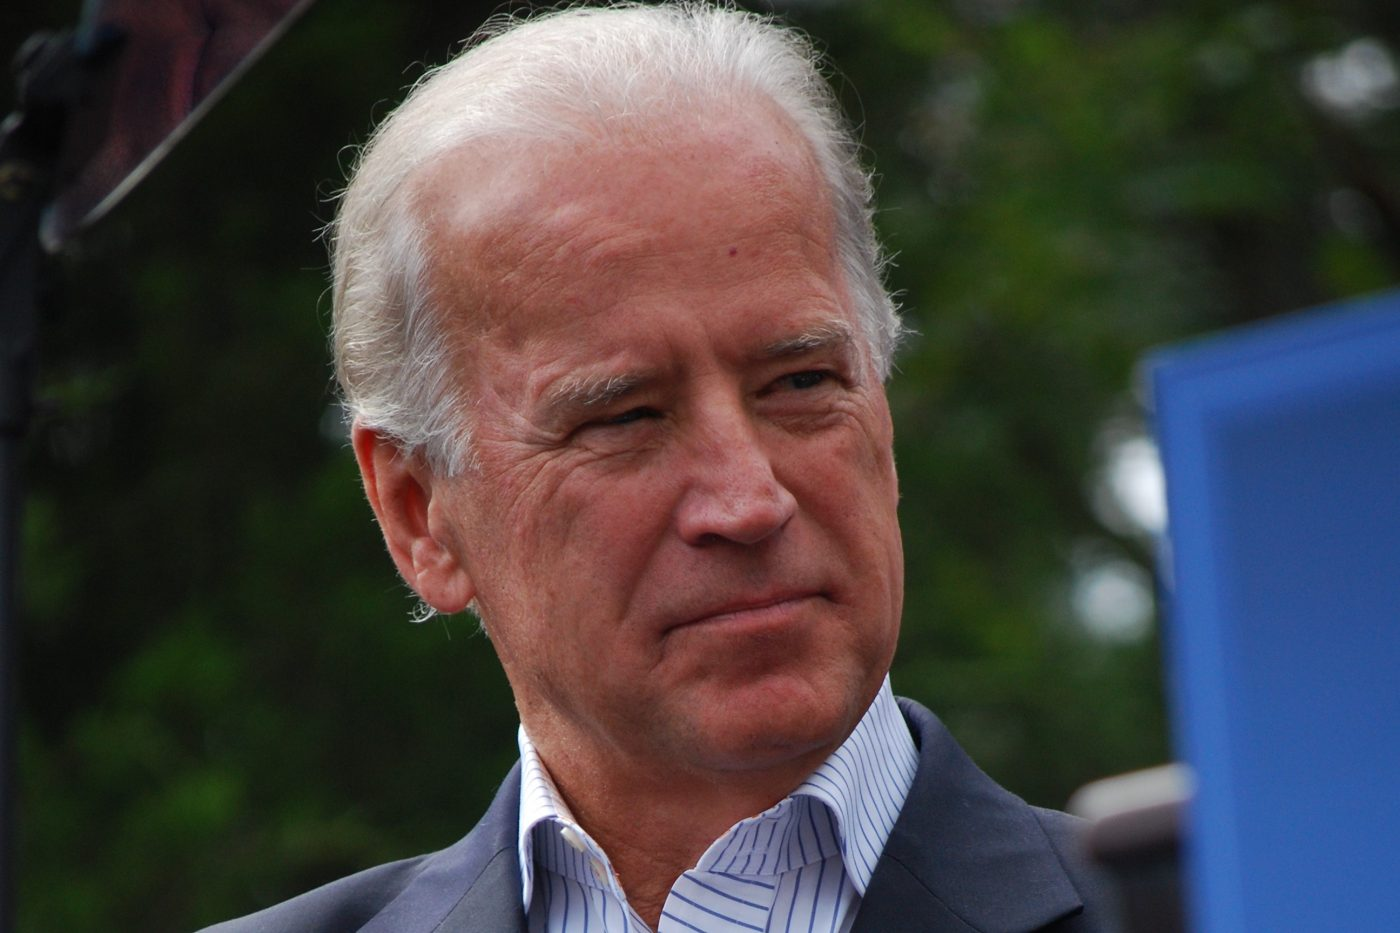 joe biden, lgbtq, lgbt, gay news, metro weekly